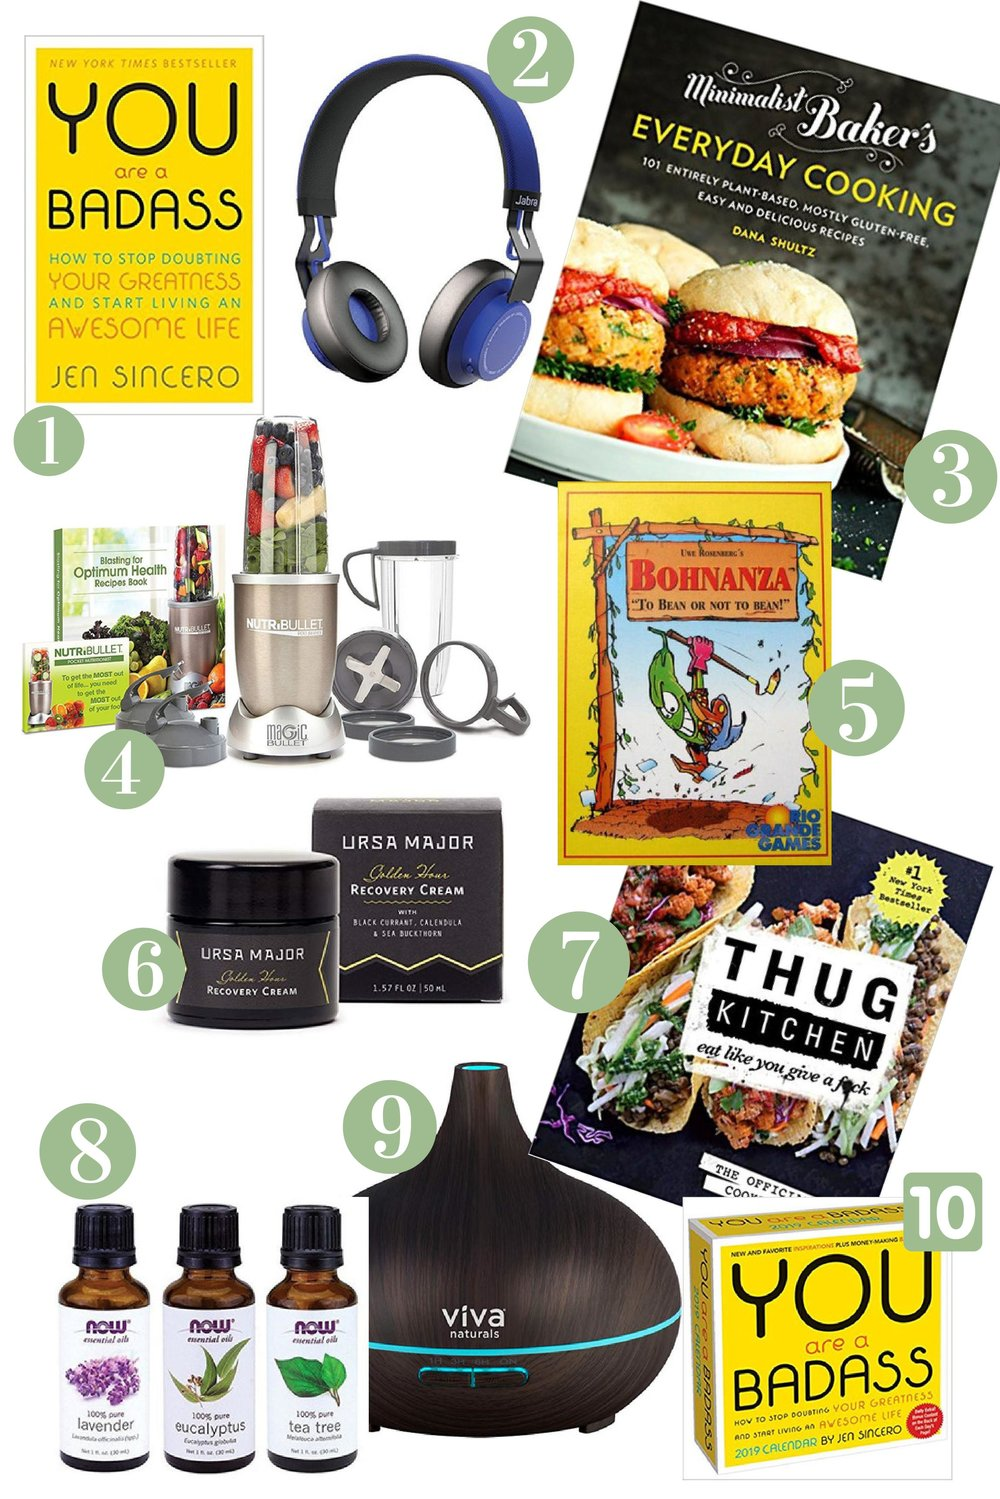 10 LAST minute holiday gifts that'll impress any Scrooge - It's got everything from books and skincare to kitchen gadgets and board games. It has ideas for everyone on your list! 10 gifts that people will actually use and enjoy. you can get these delivered to your house in just 2 days (thanks Amazon) and totally avoid the holiday crowds at the mall. #giftguide #christmas #wellness #vegan #plantbased #vegan #health